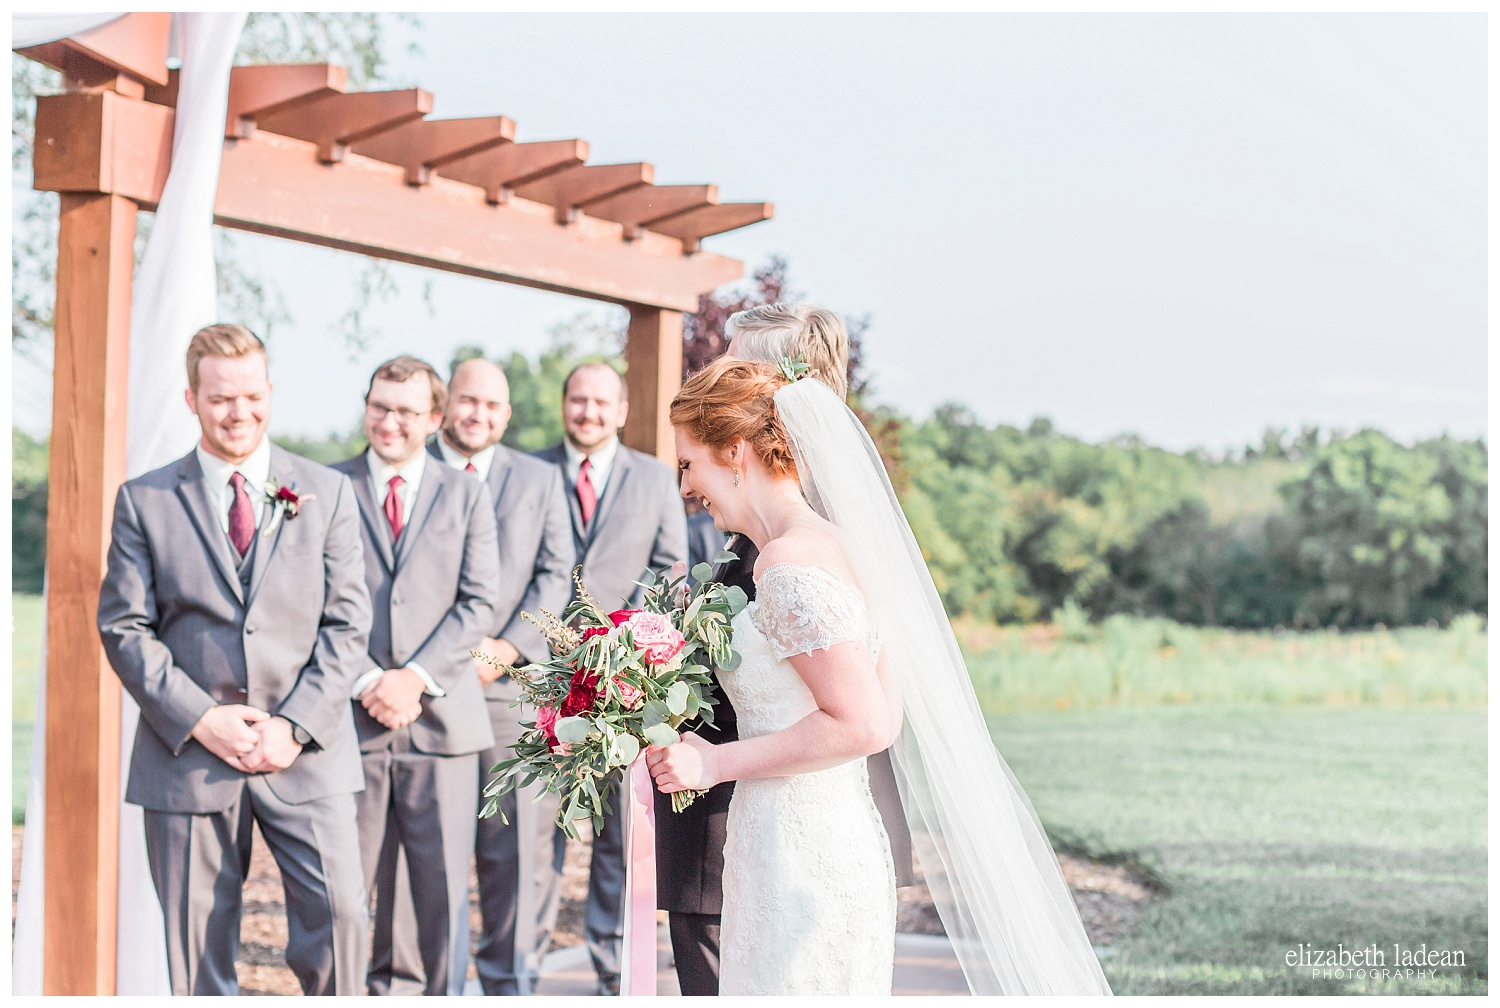 Burgundy-and-Gold-Wedding-Kansas-City-The-Legacy-at-Green-Hills-M+T0902-Elizabeth-Ladean-Photography-photo-_2293.jpg